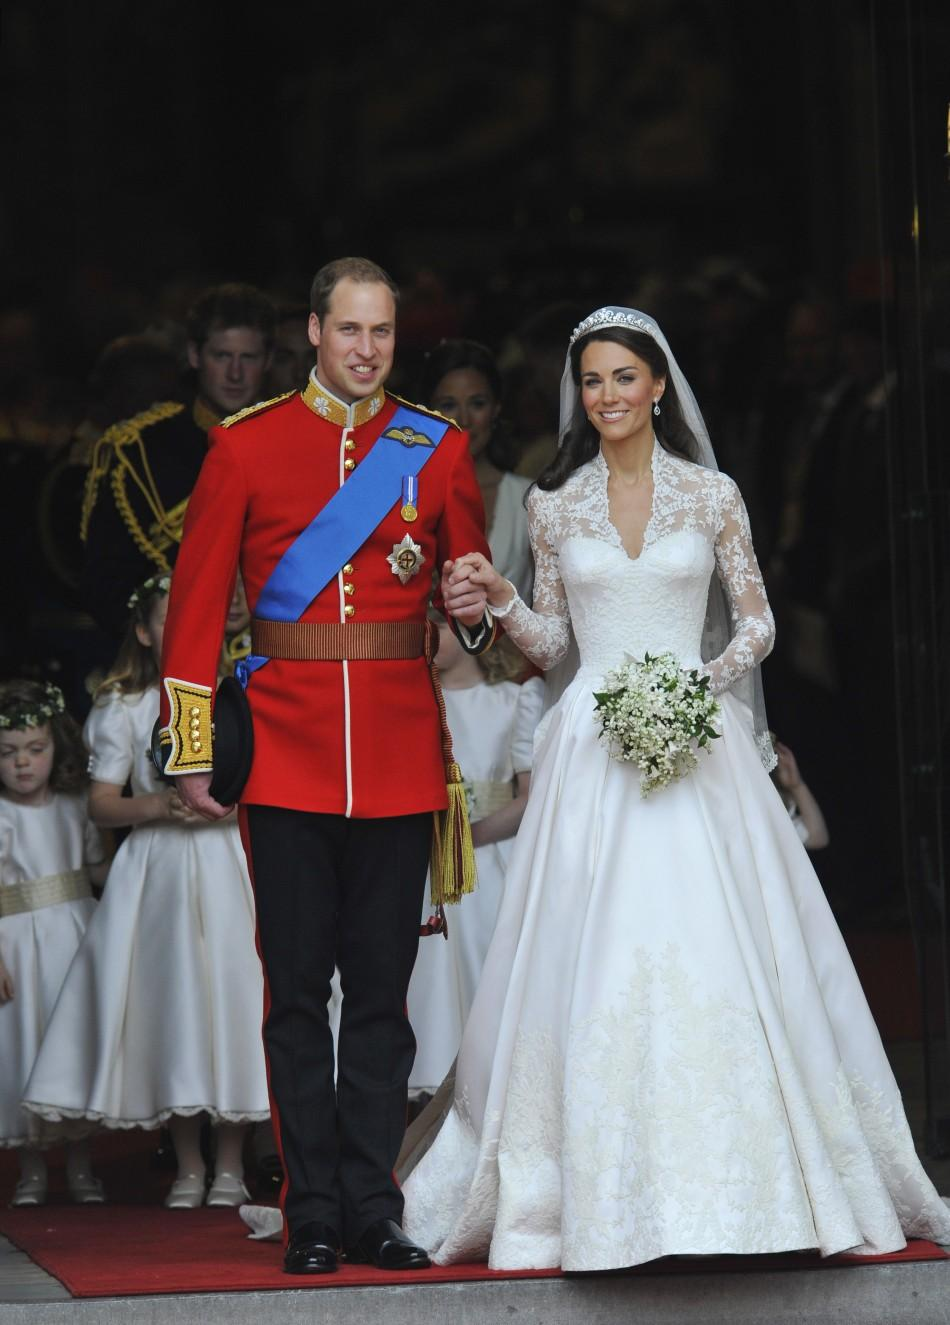 Kate Middleton\'s Wedding Dress to Fetch Record $13 Million (PHOTOS)